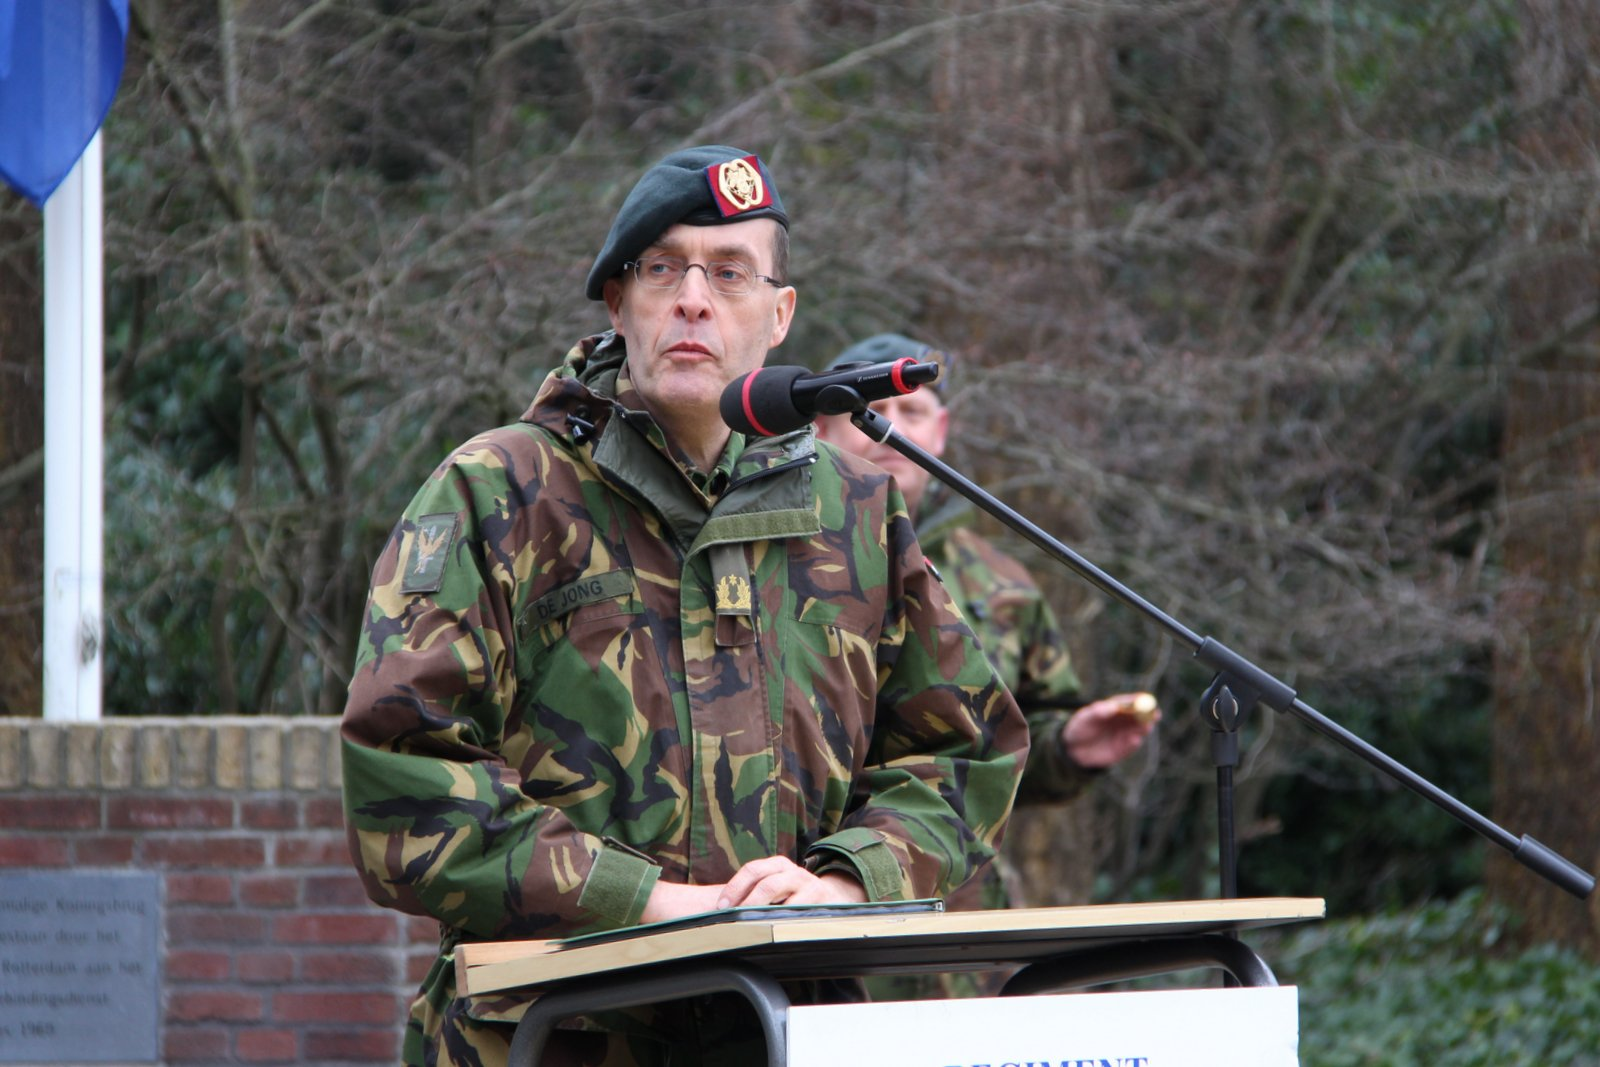 regiment_142_jaar_20160219_1958318467